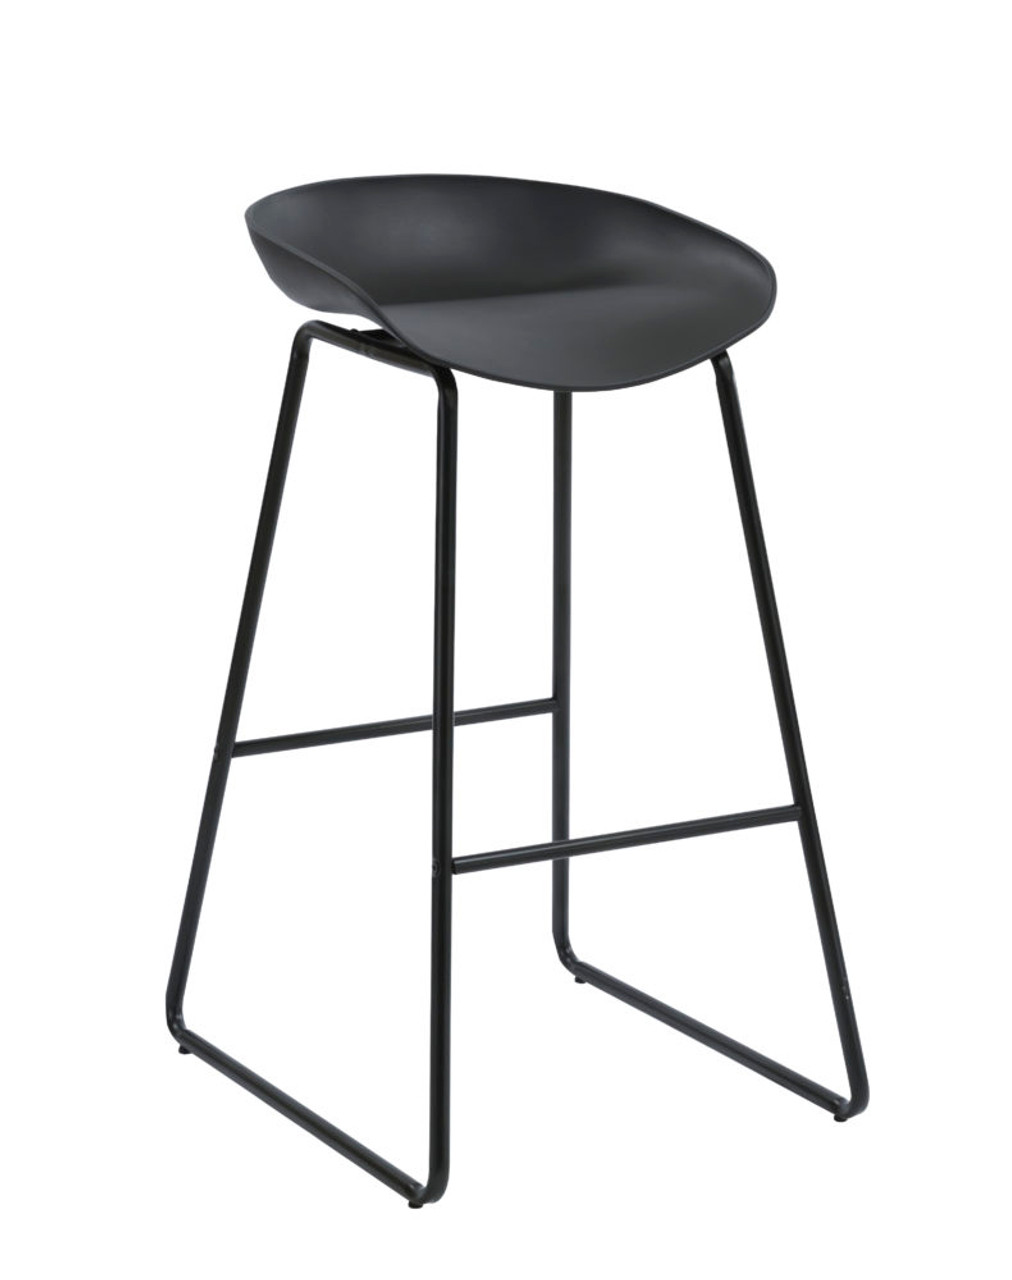 Pleasant Aries Bar Stool Metal Leg 3 Colours Available Andrewgaddart Wooden Chair Designs For Living Room Andrewgaddartcom